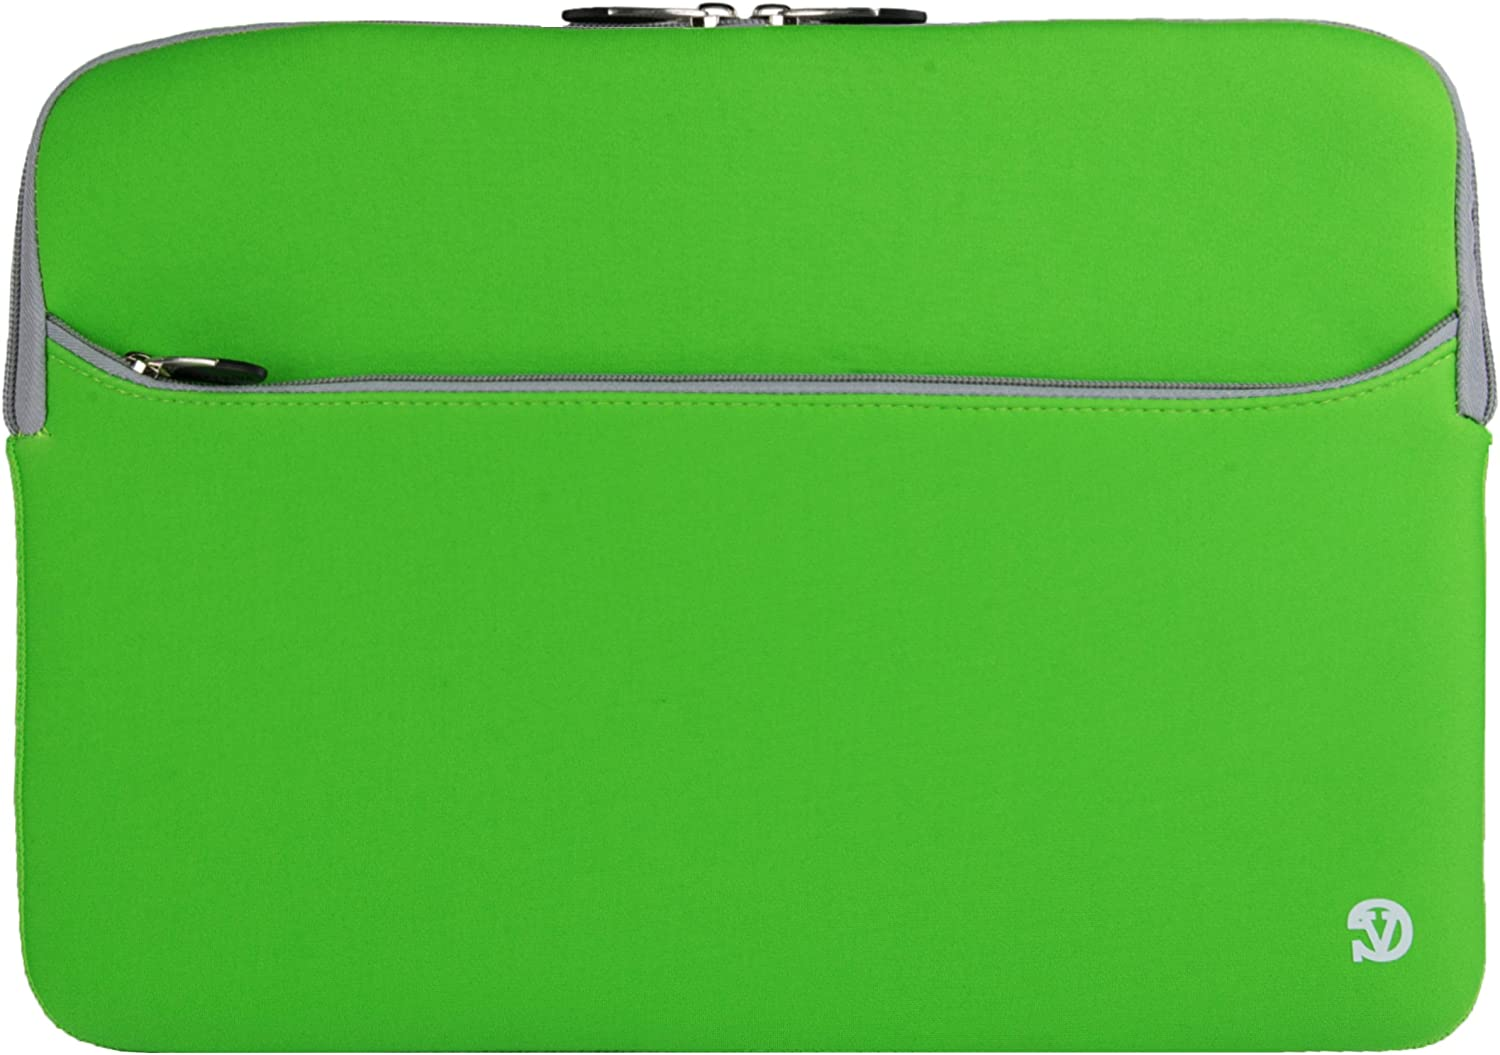 Laptop Sleeve Case for Dell XPS 13 7390, 7390 2 in 1, 9300, 9310 2 in 1, 9310, 9365 9370 9380